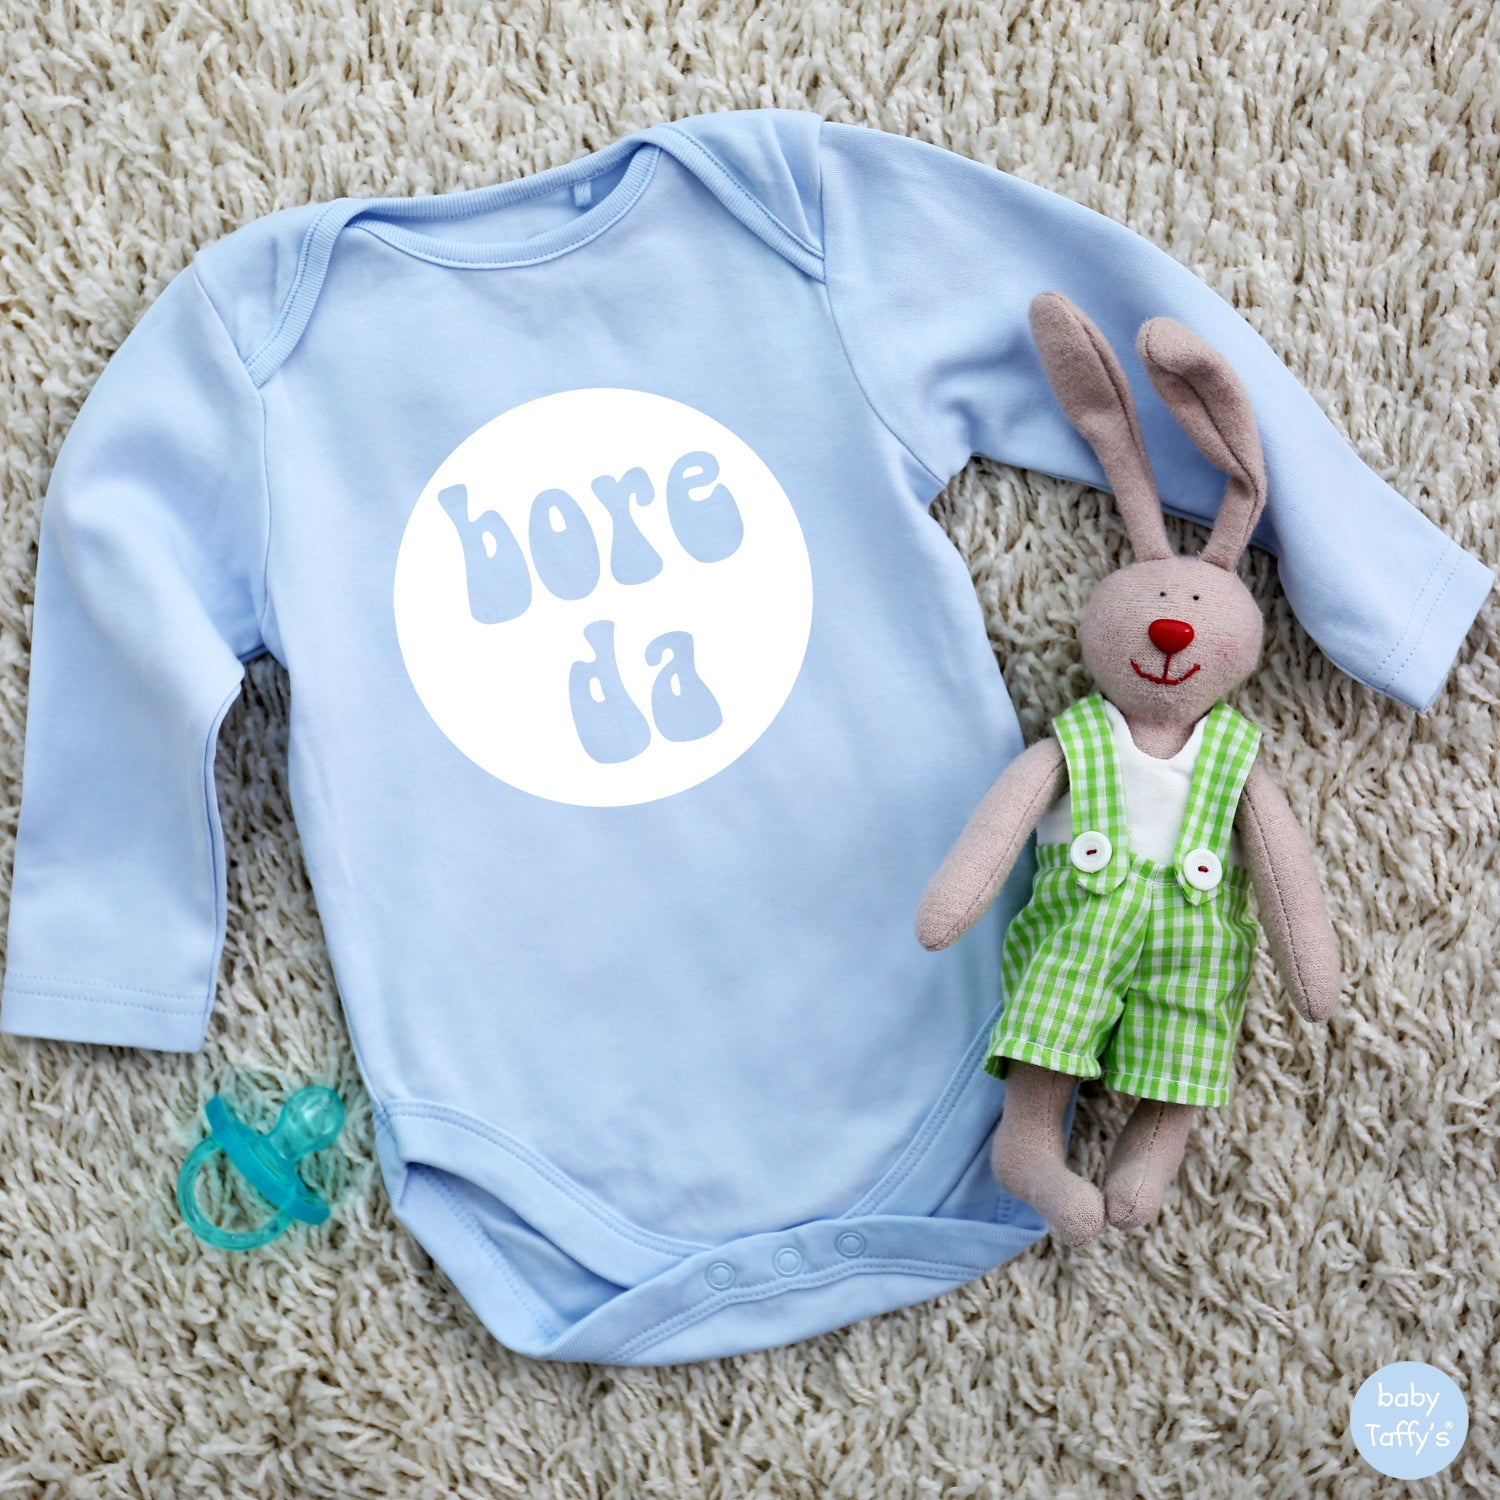 d1acbe4db Welsh Baby Clothing by Taffy's® at Giftware Wales